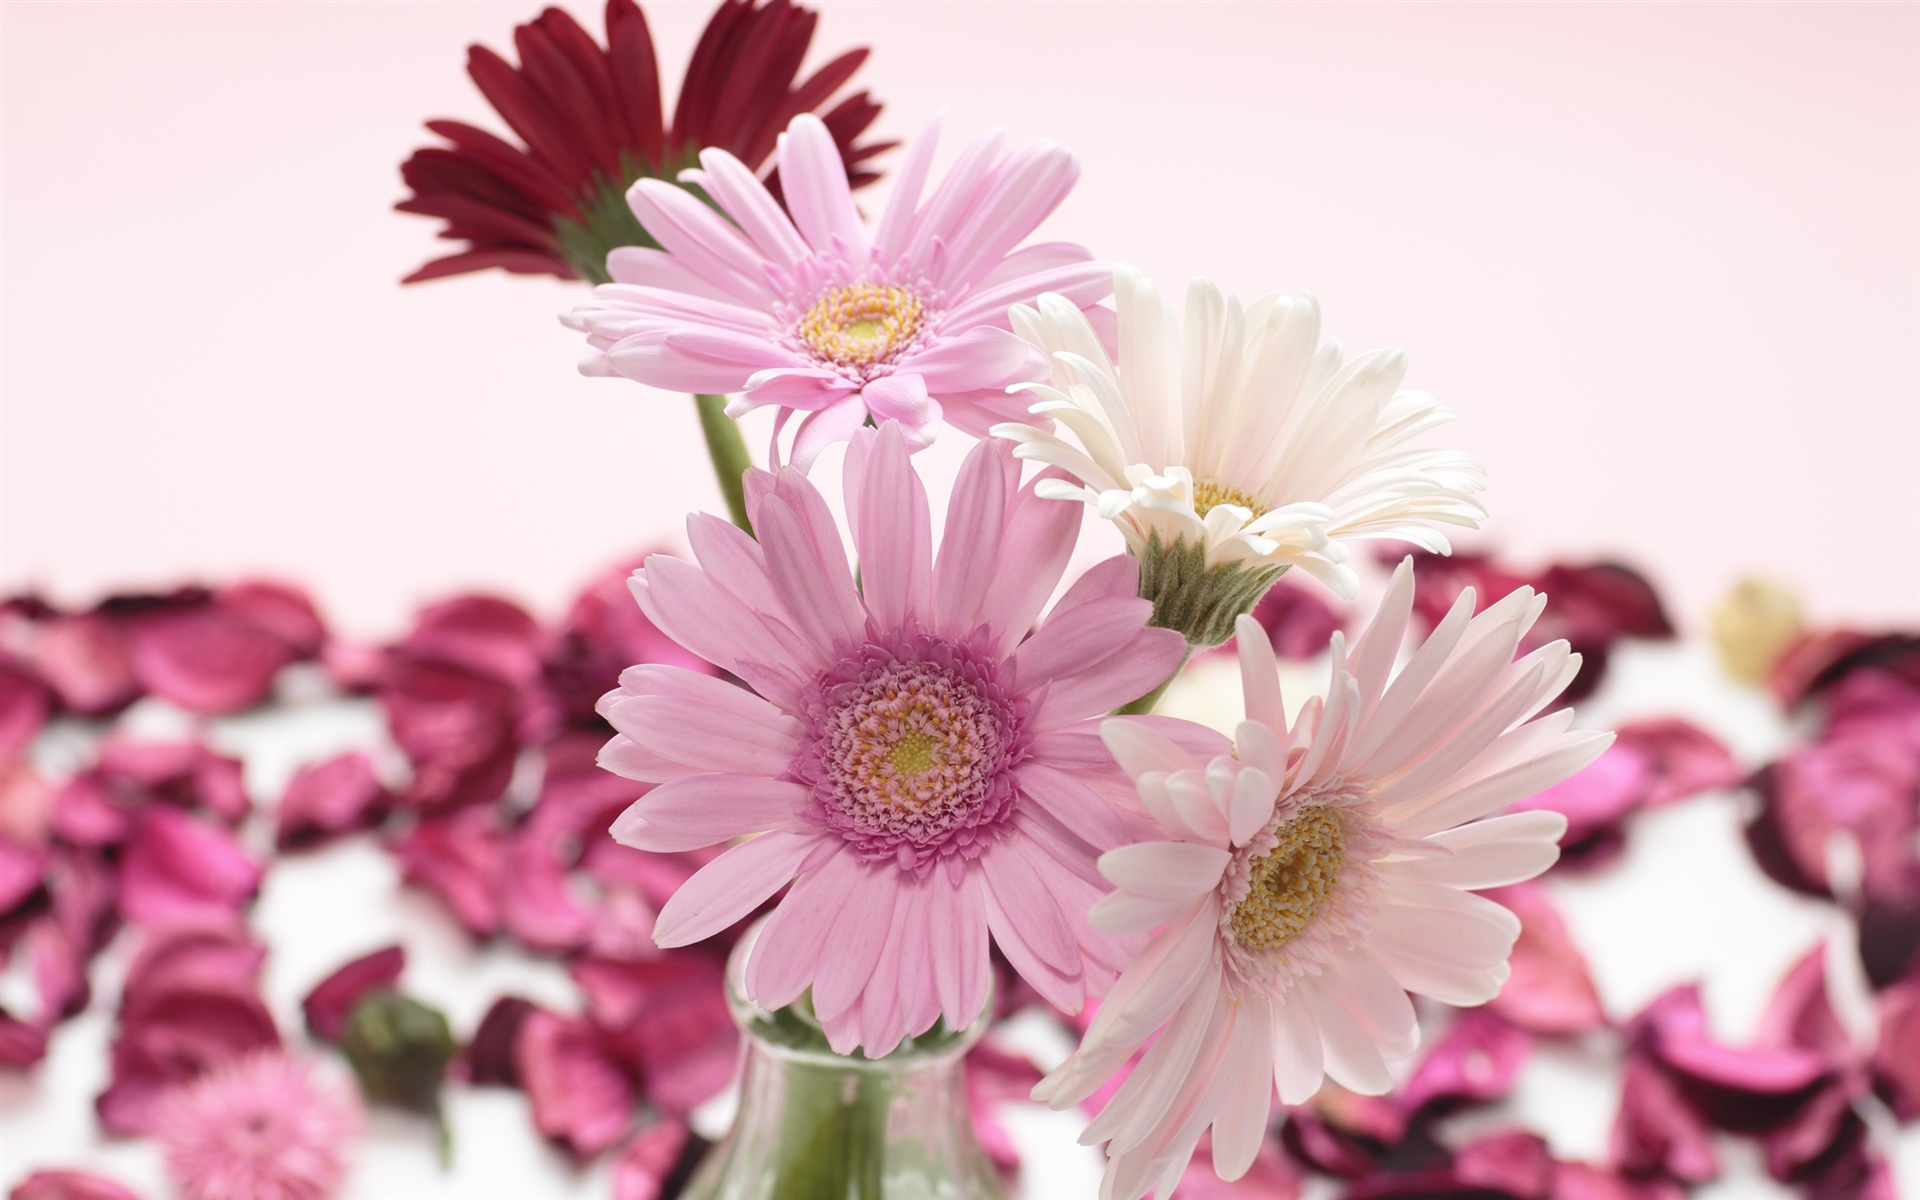 Wallpaper Red White Pink Gerbera Flowers Close Up 2560x1600 Hd